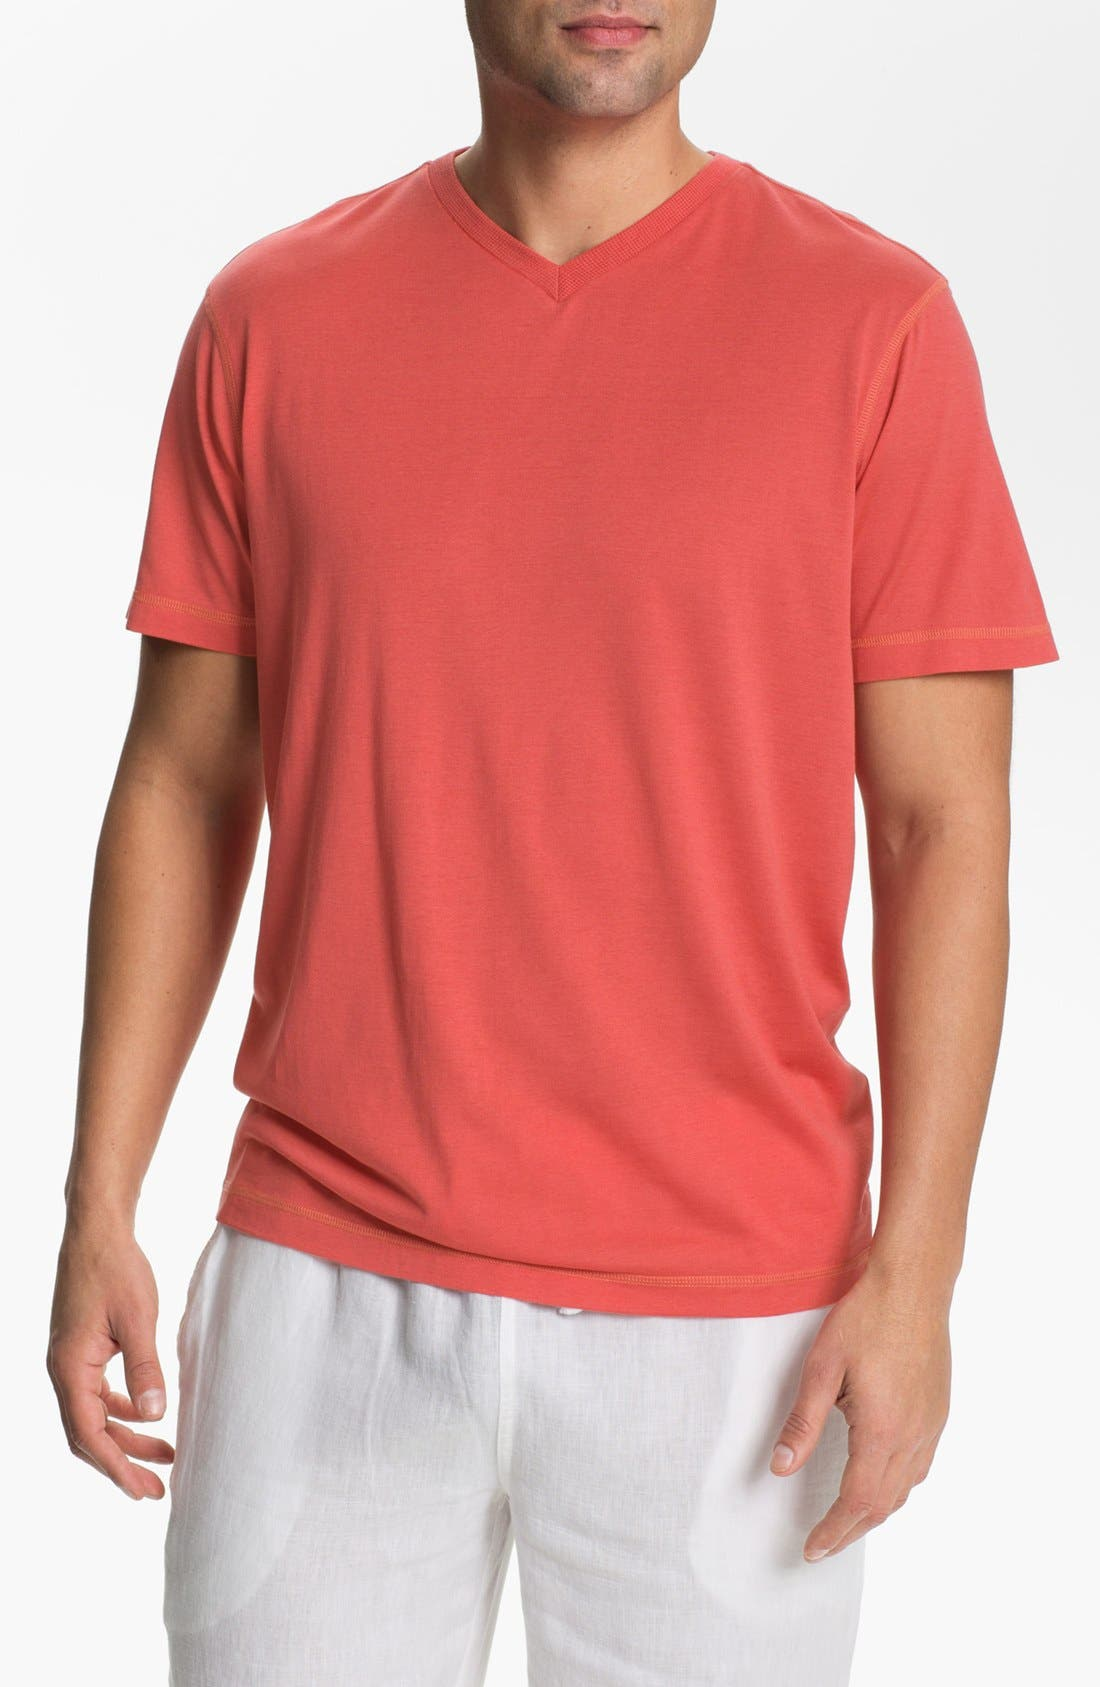 Main Image - Daniel Buchler V-Neck Silk Blend T-Shirt